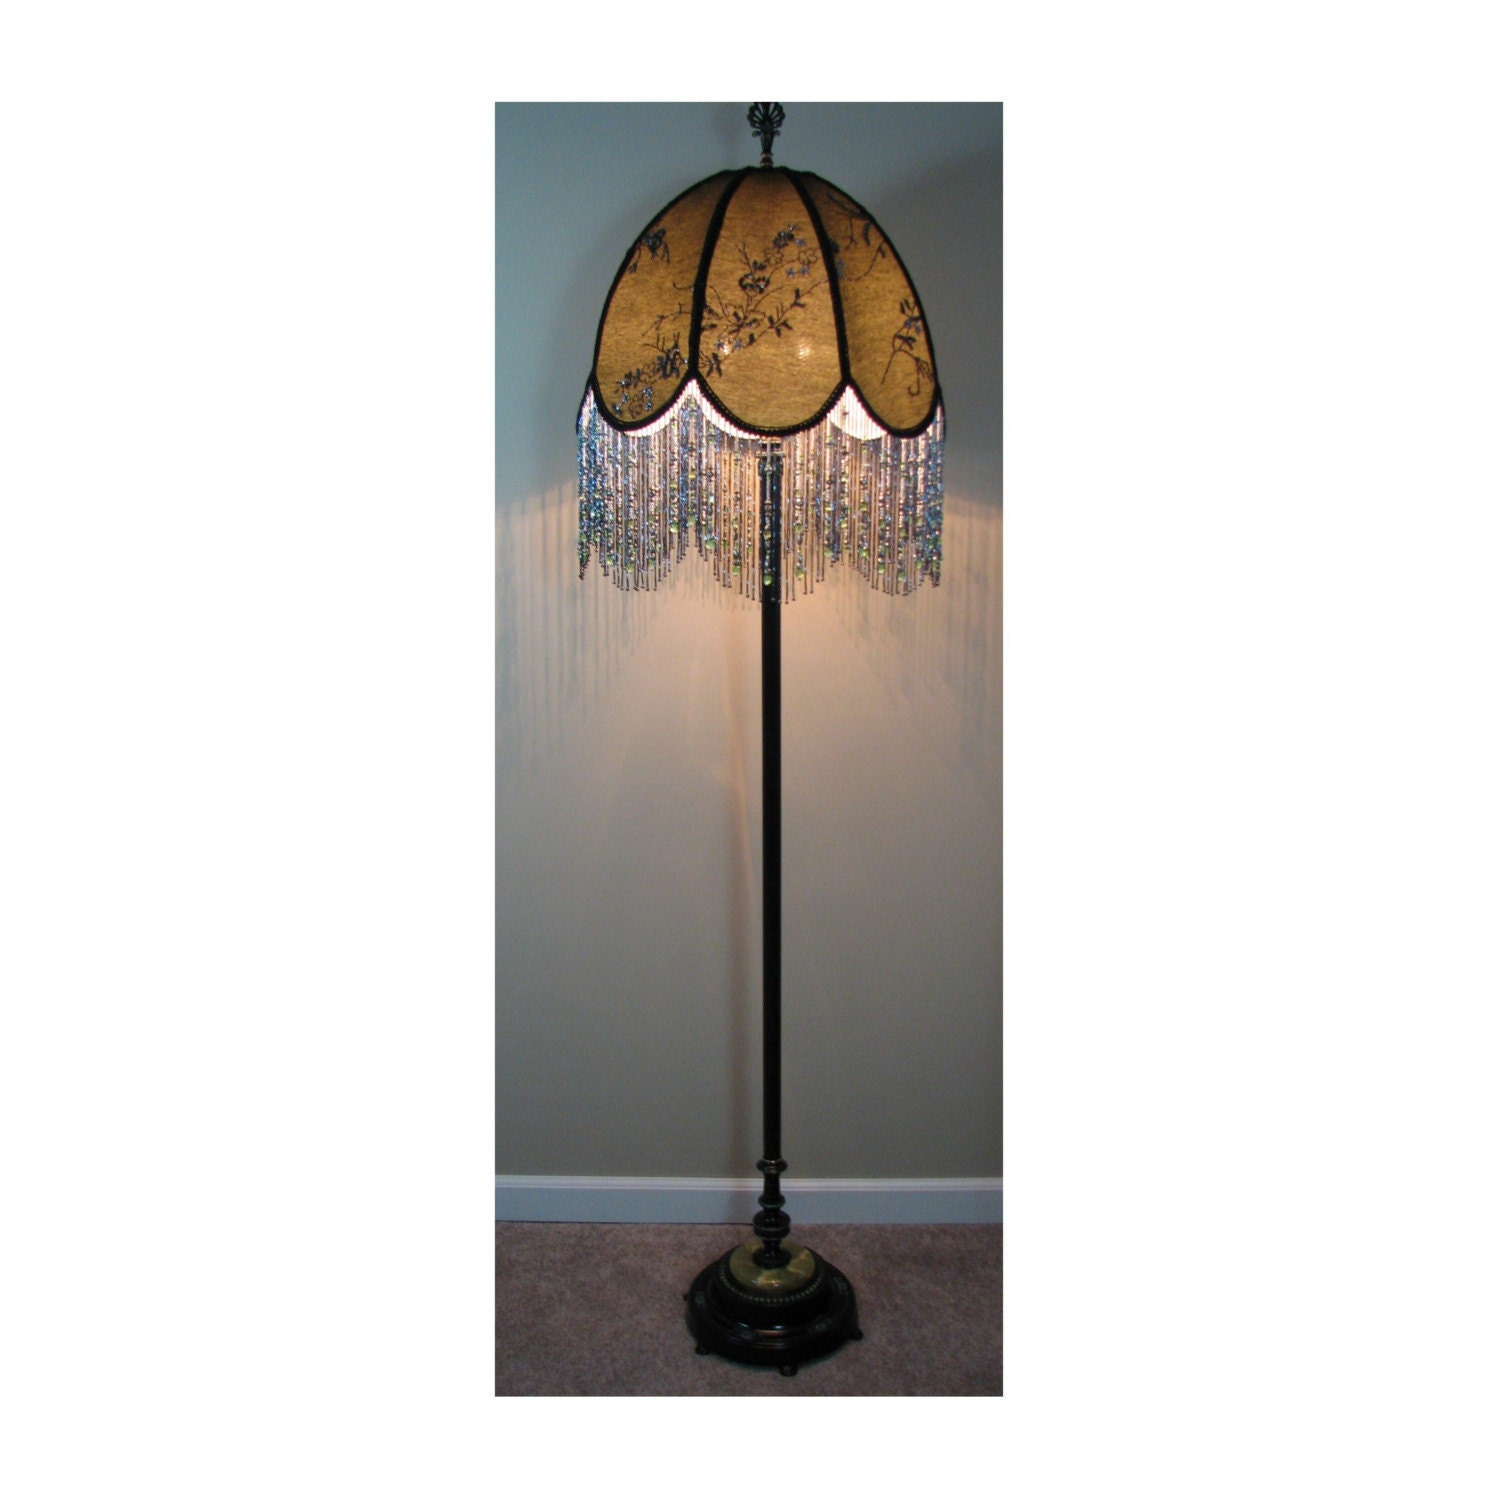 Vintage Floor Lamp With Victorian Lamp Shade By